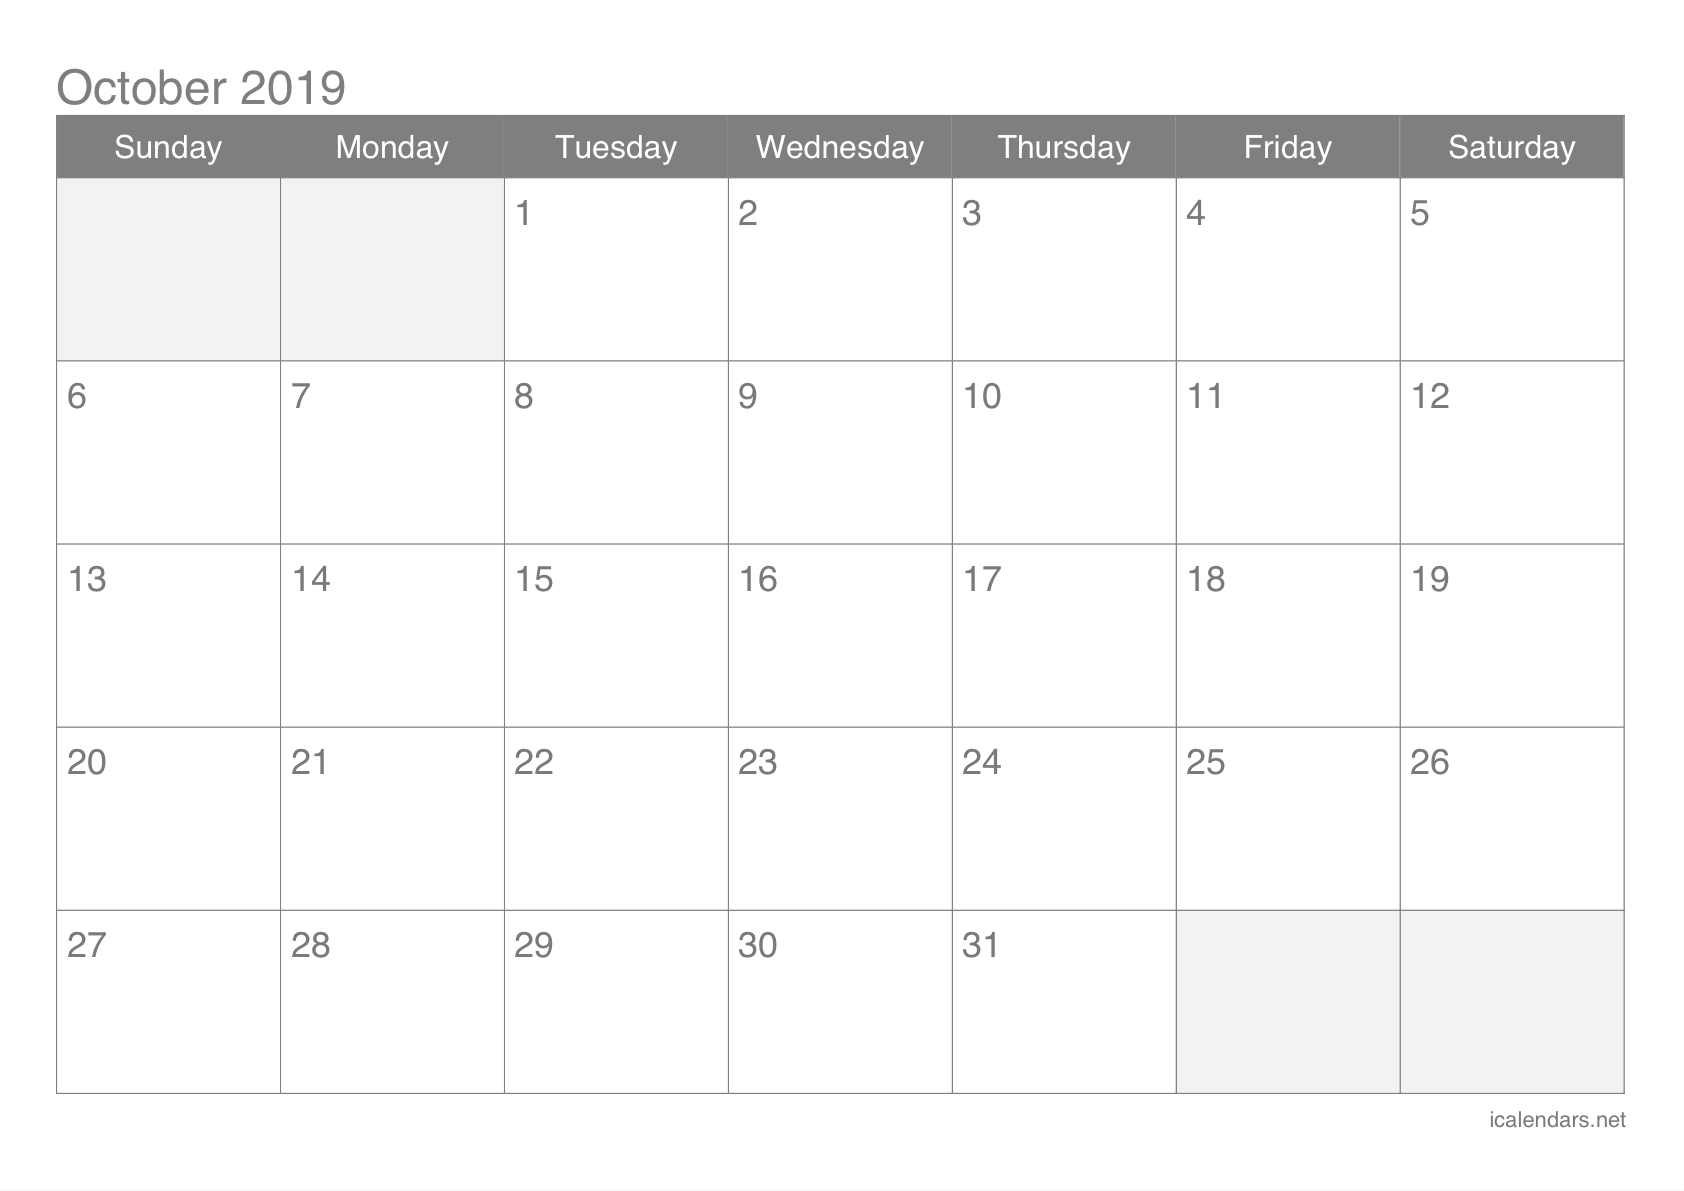 image relating to Printable Calendar October identify Oct 2019 Printable Calendar -